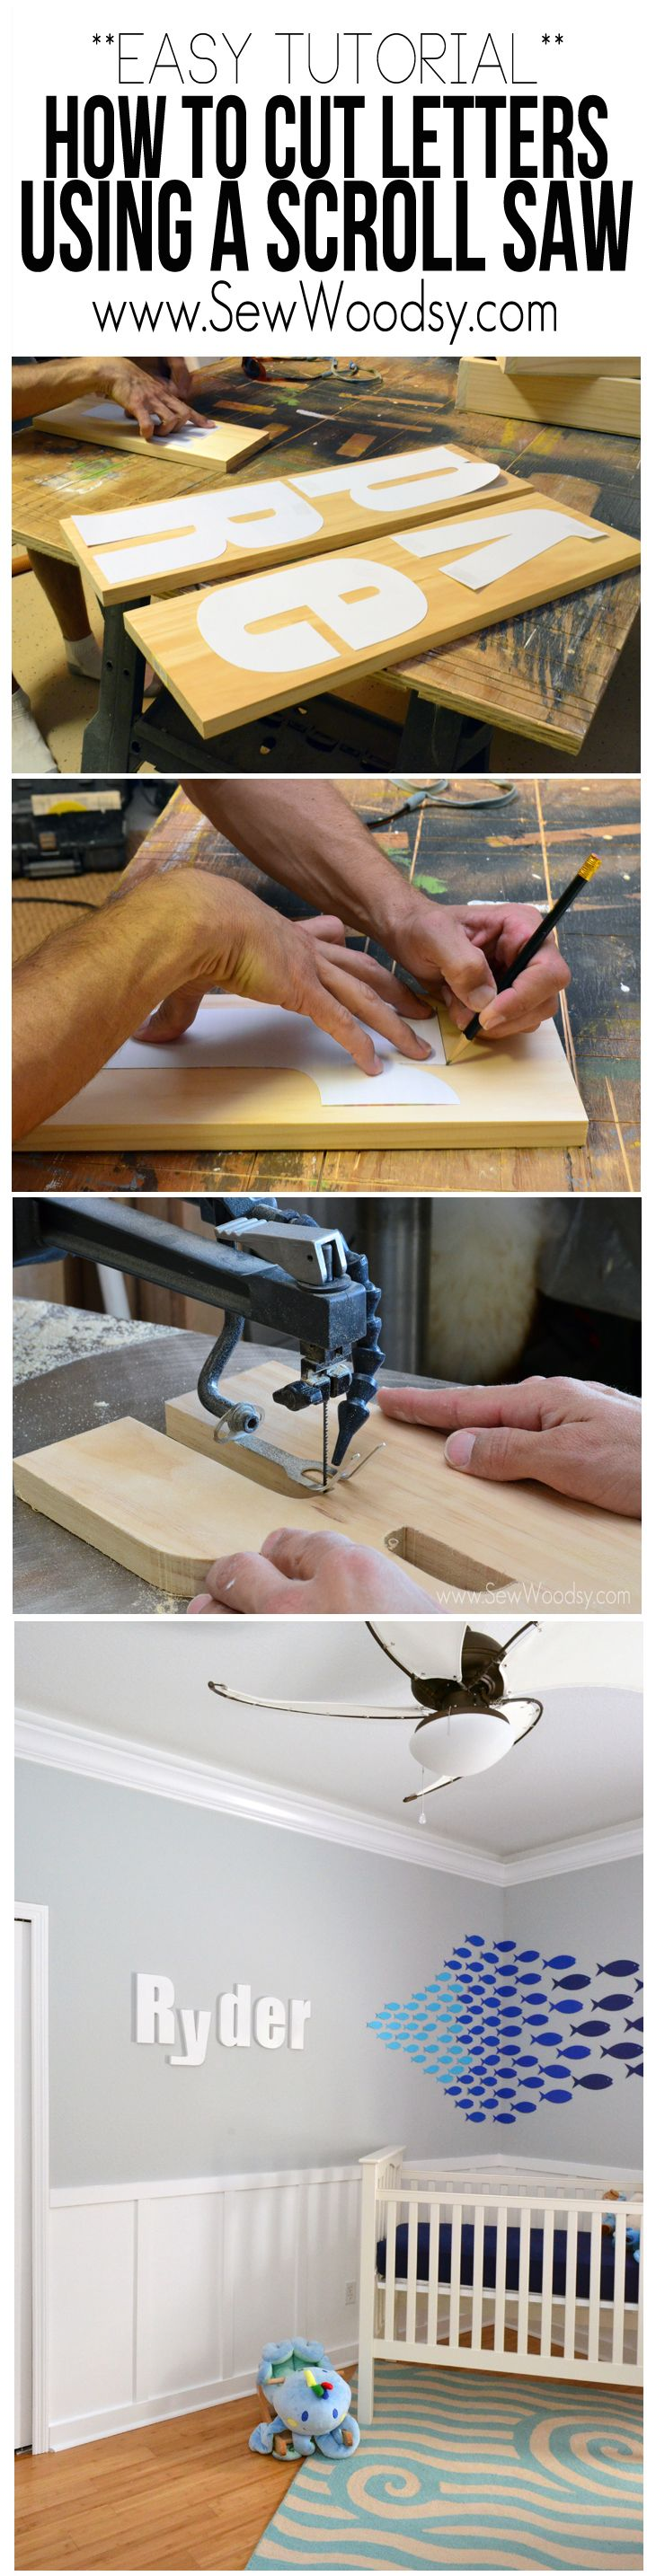 Small hand saw for crafts - Easy Tutorial On How To Cut Letters Using A Scroll Saw 3mdiy 3mpartner